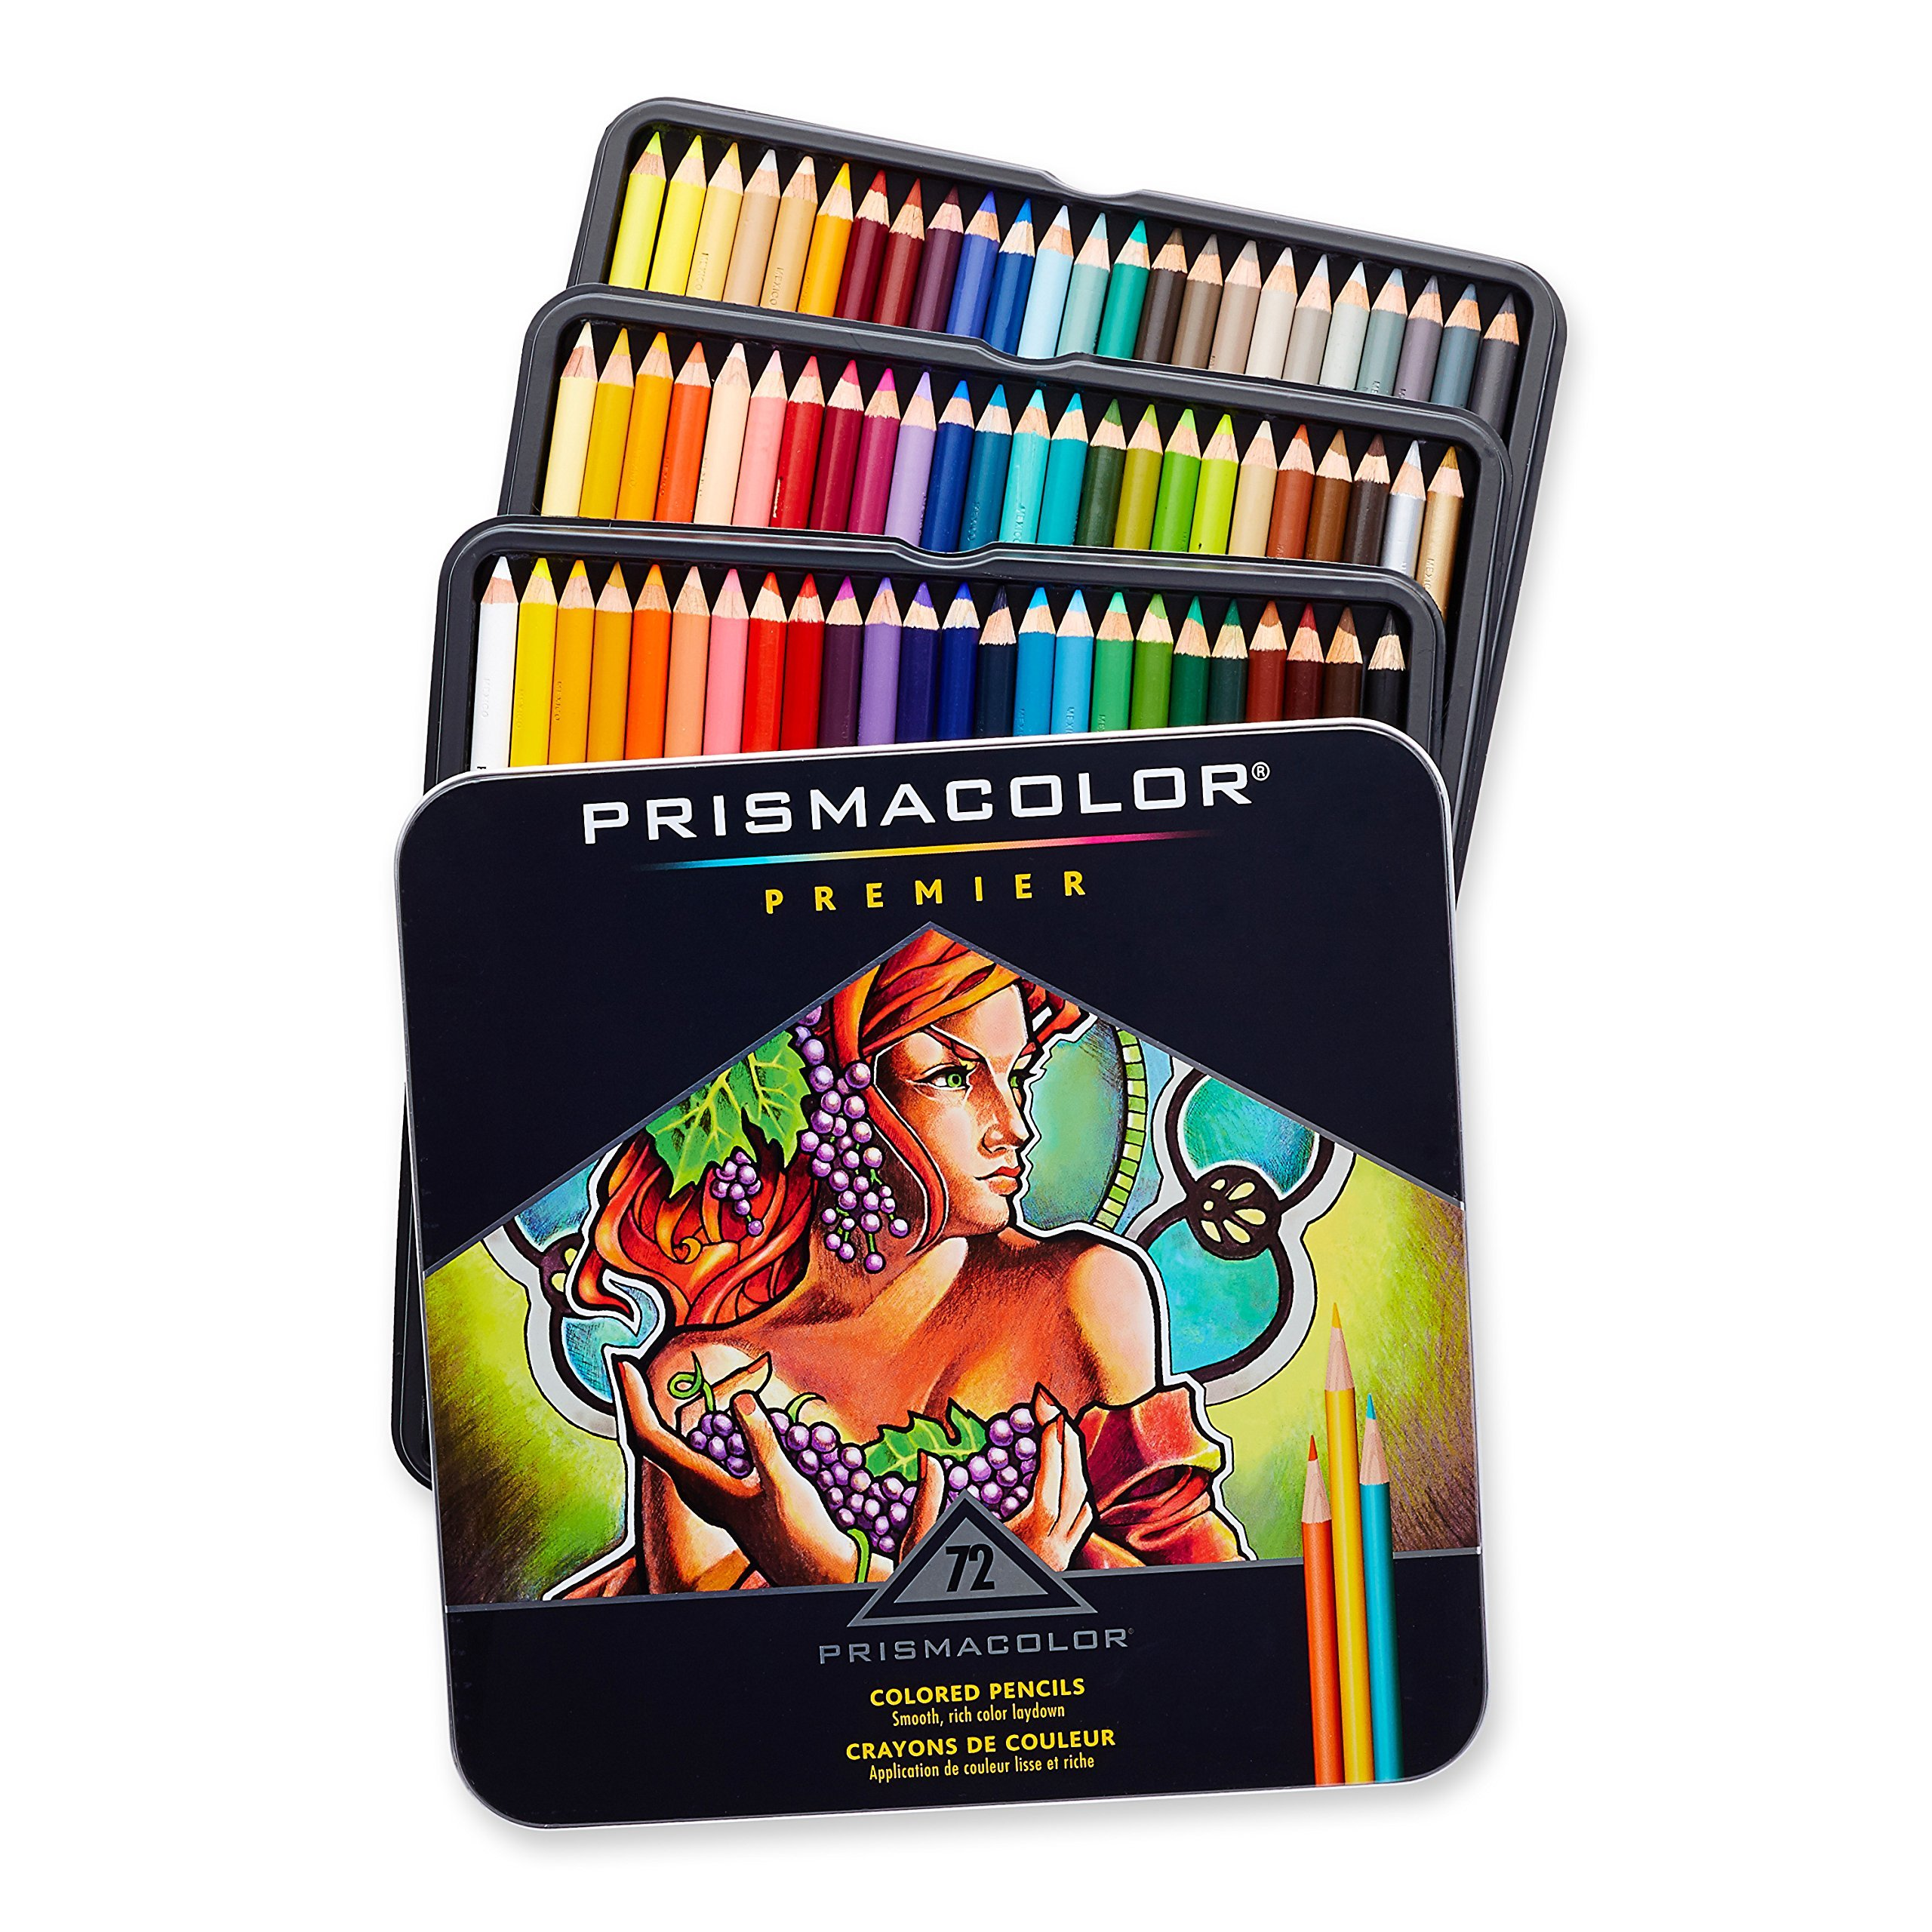 Prismacolor Premier Colored Pencils, Soft Core, 72 Pack by PRISMACOLOR